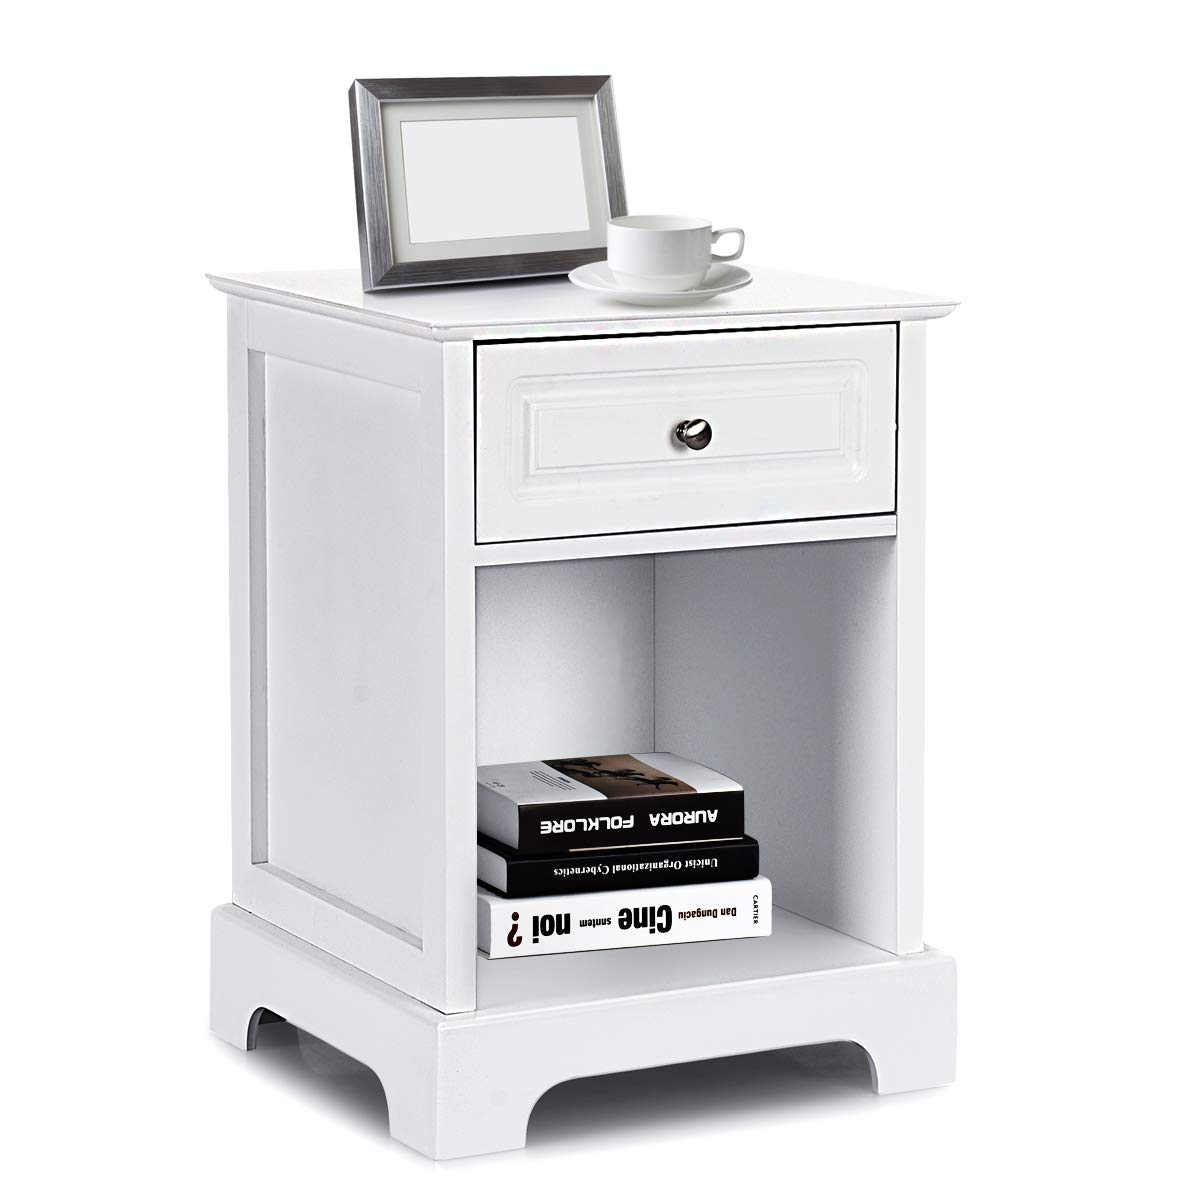 Giantex End Table W/ 1 Drawer and Open Shelf for Home Living Room Furniture Chest Sofa Side Bedside Storage Nightstand (White) by Giantex